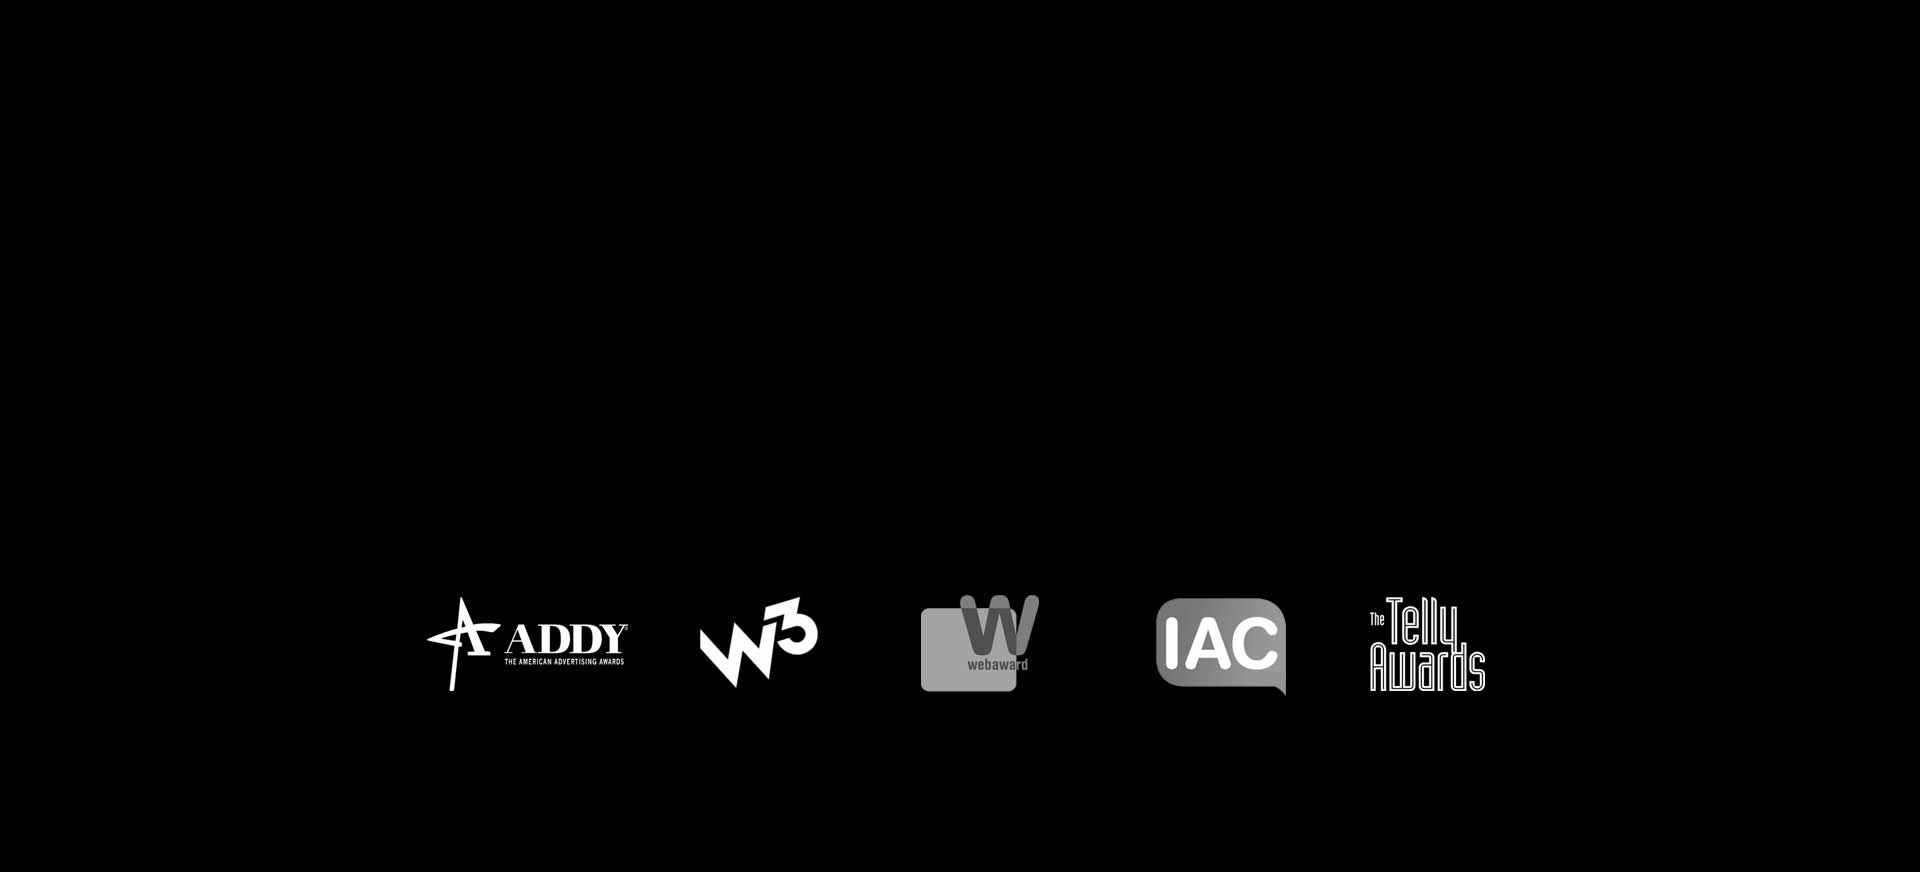 Five logos shown for The American Advertising Awards, the W3 advertising awards, Web Awards, Internet Advertising Competition and the Telly Awards